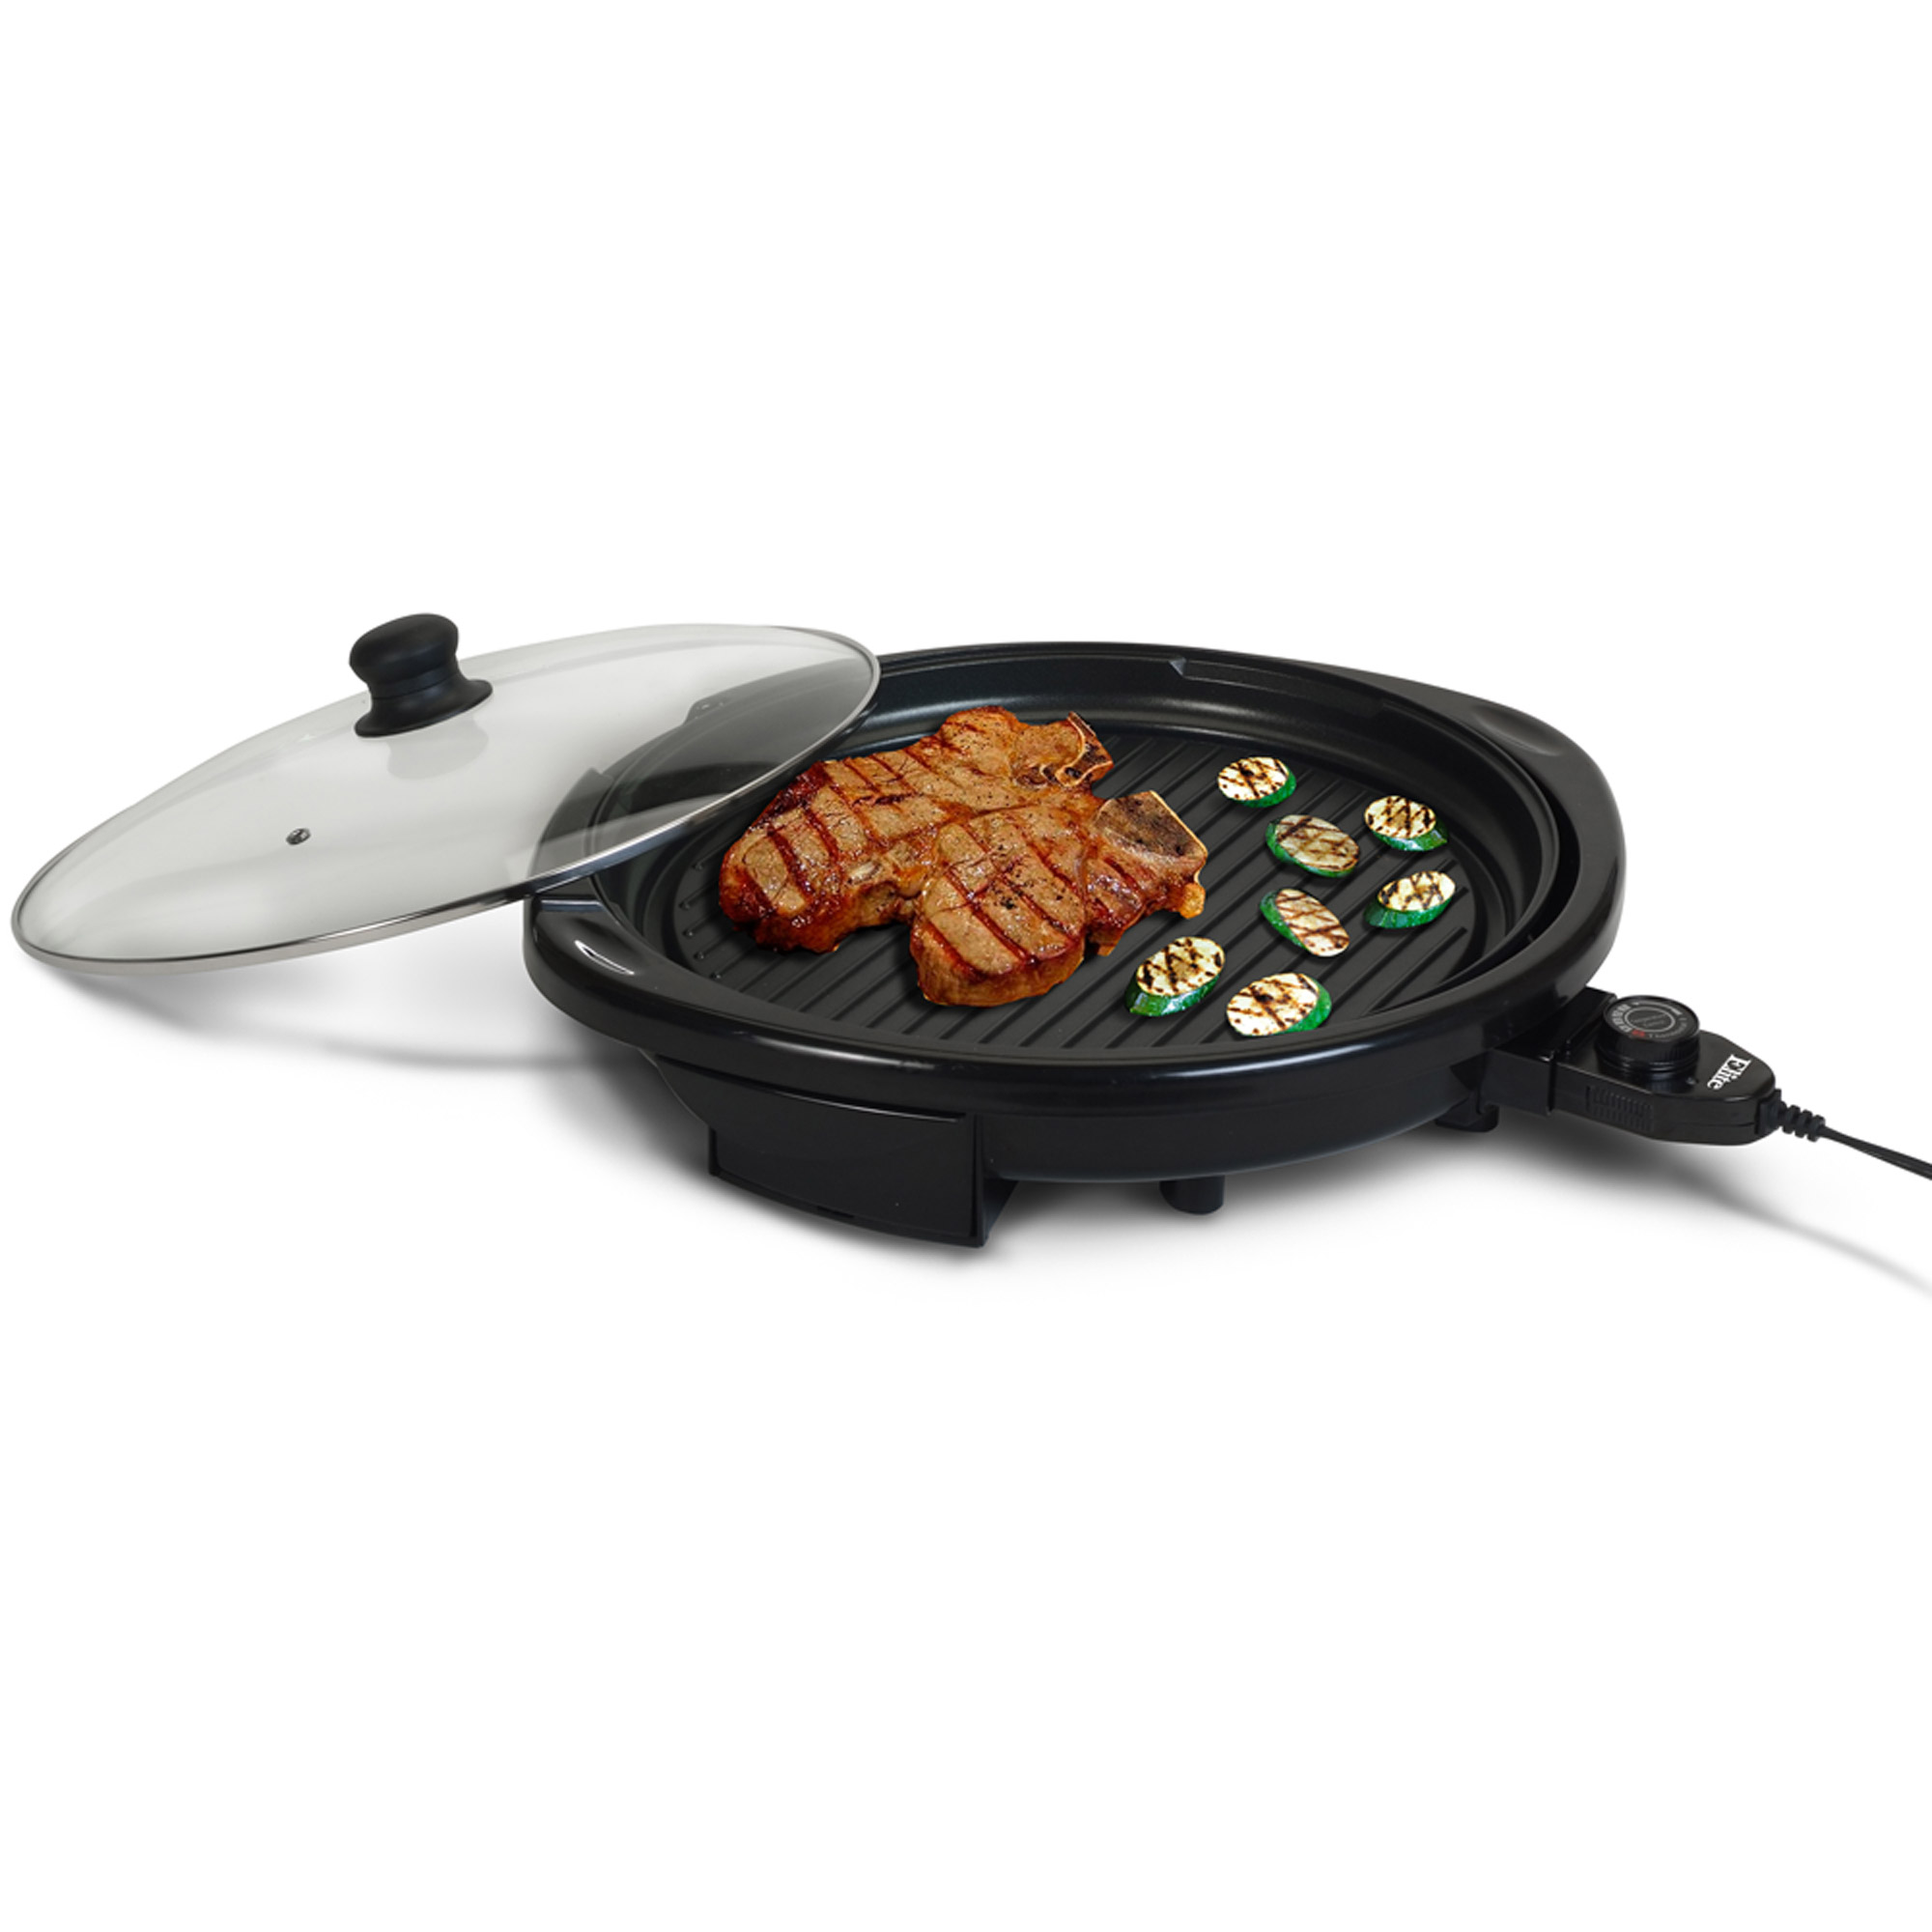 Smart Planet Smokeless Indoor Grill   Walmart.com